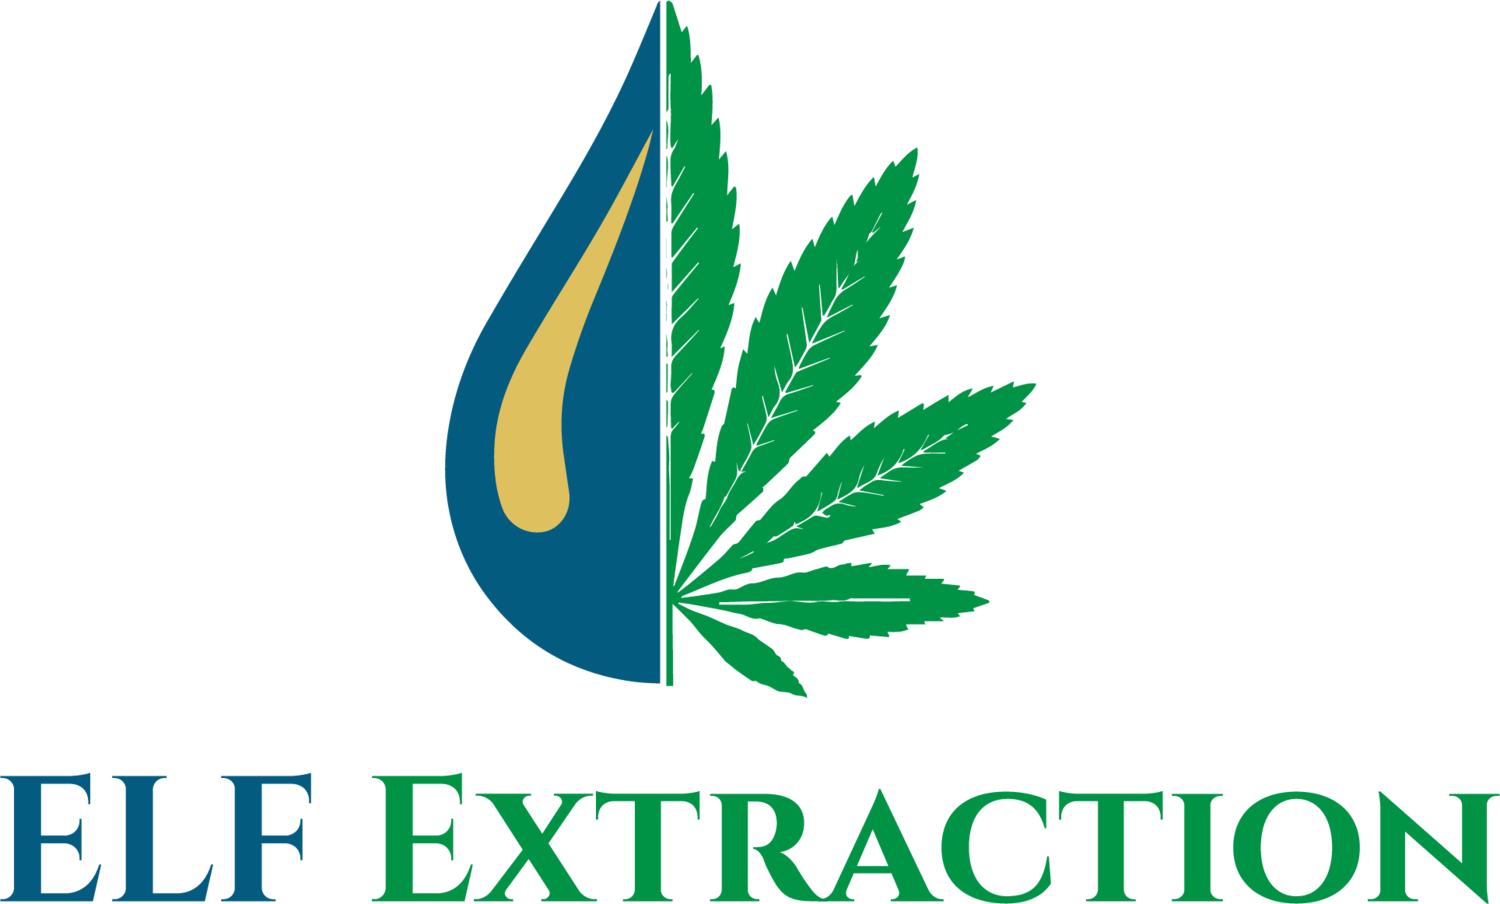 Elf Extraction Logo